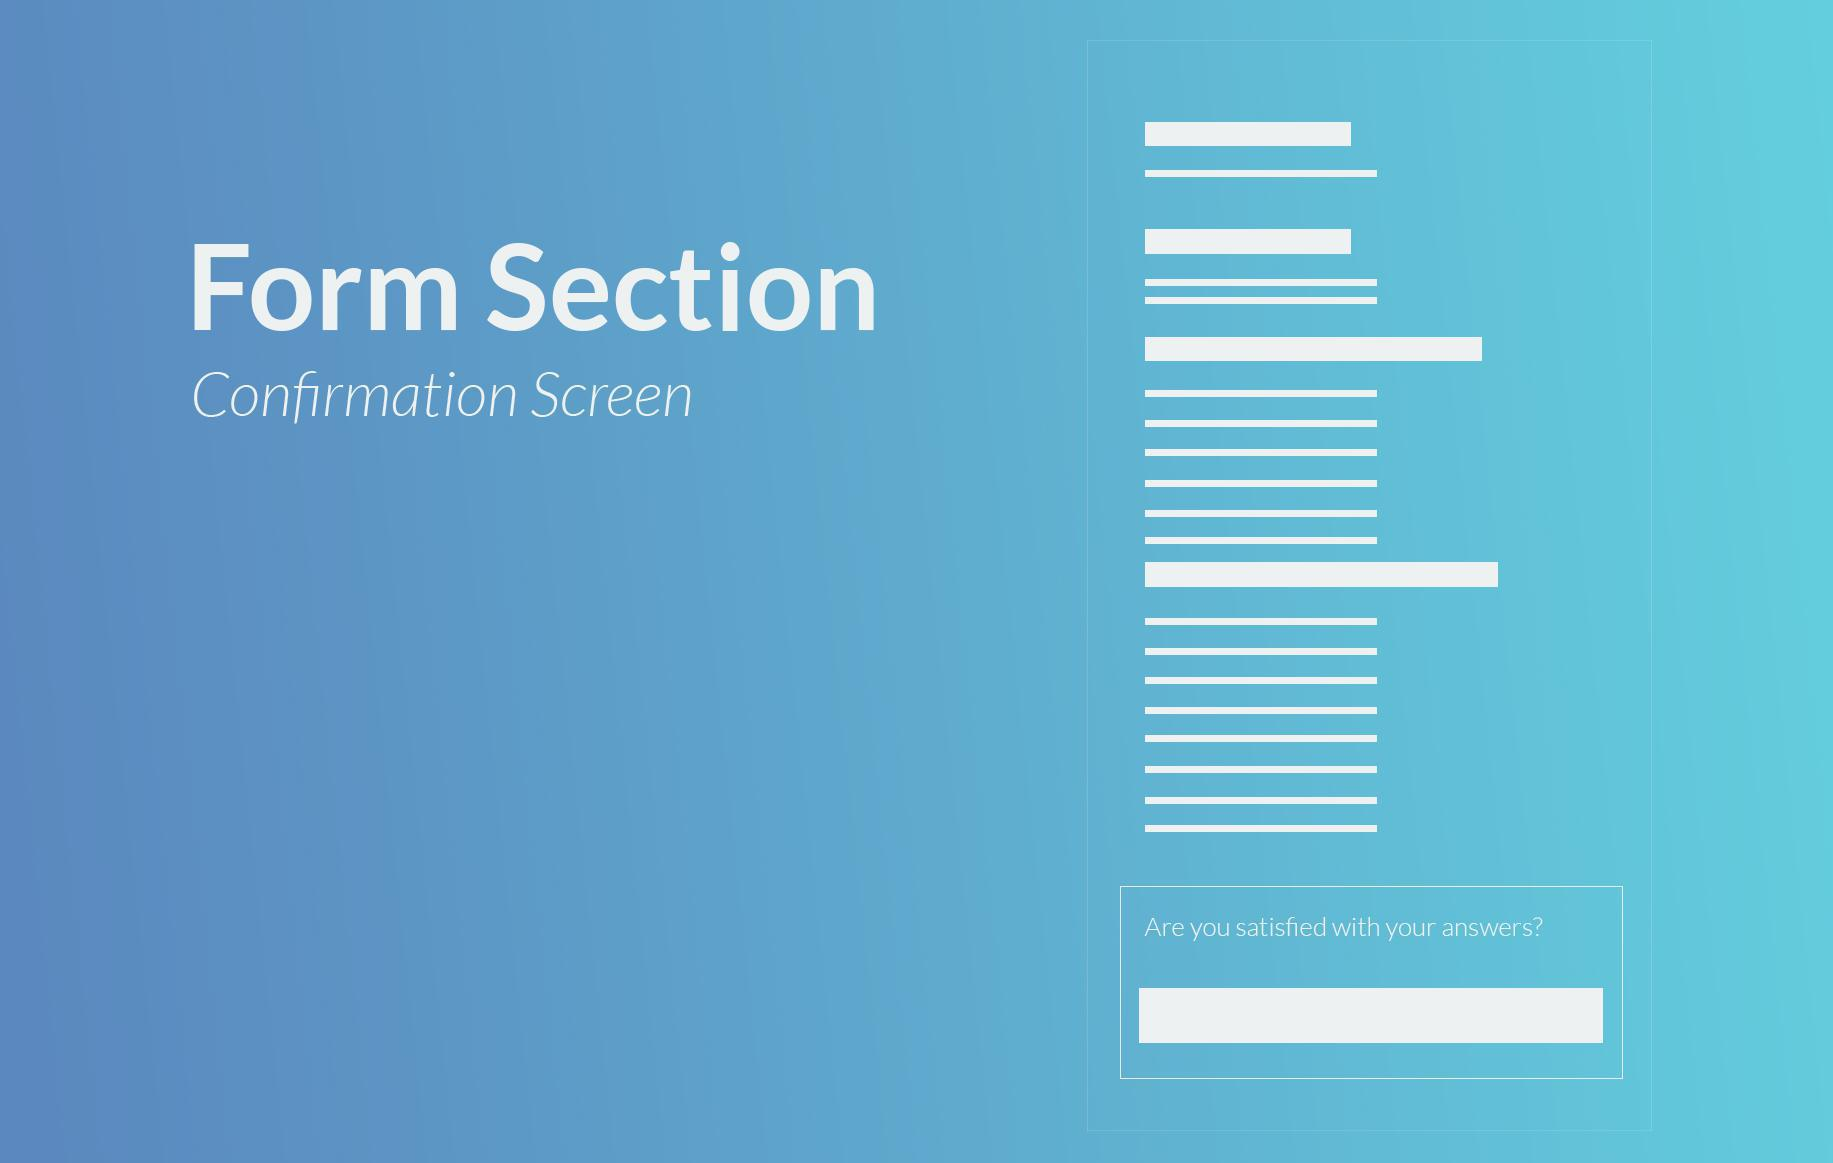 A new confirmation screen for the Form section